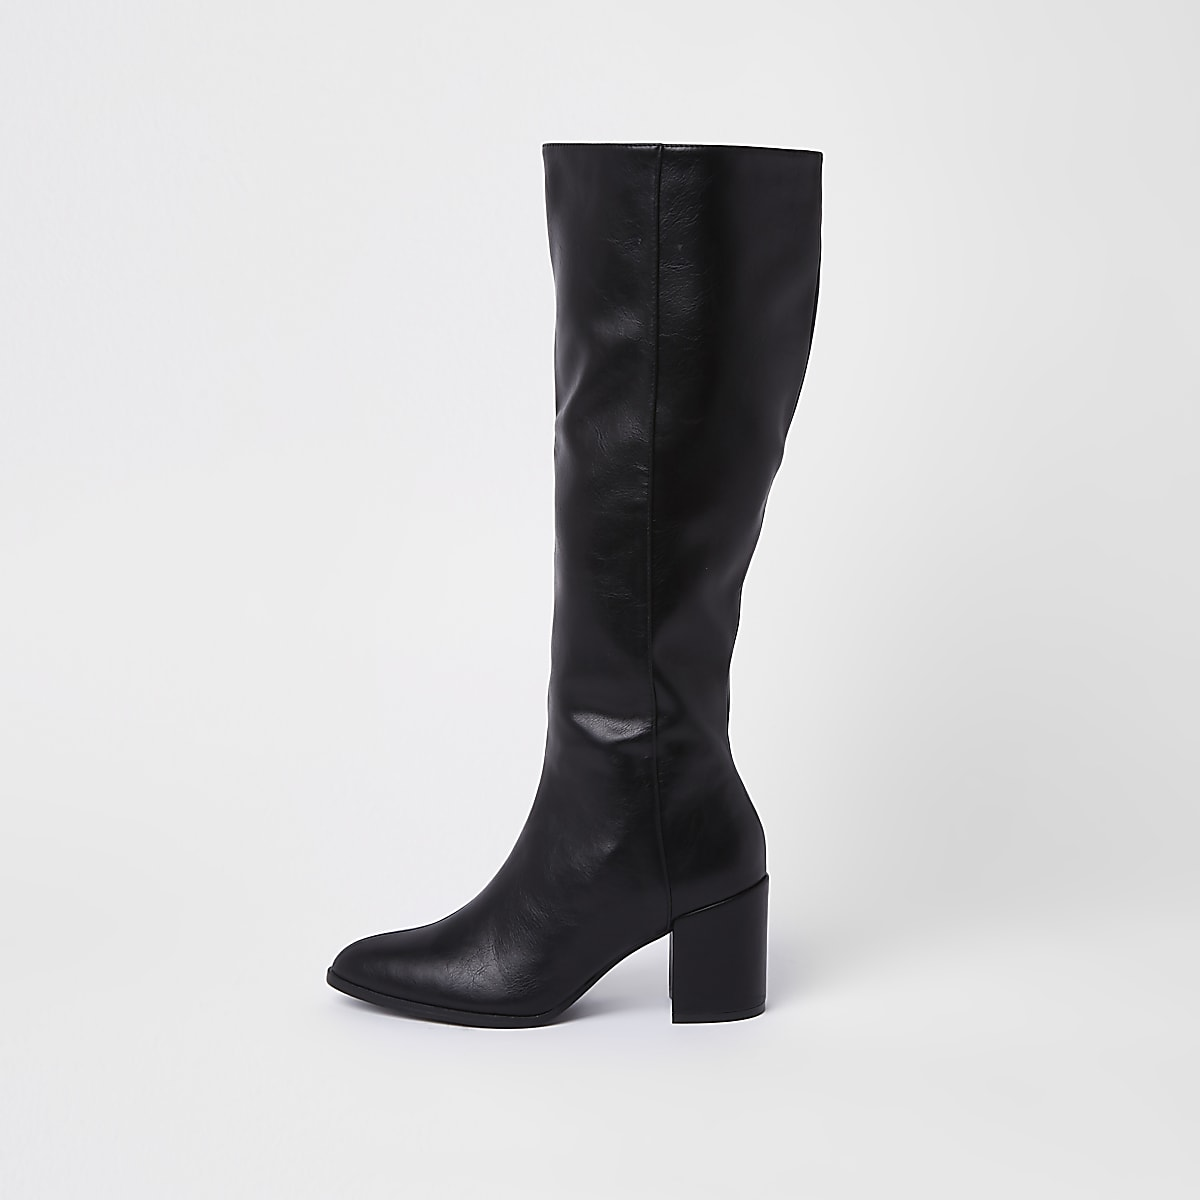 f617c295b77 Black faux leather knee high boots - Boots - Shoes   Boots - women